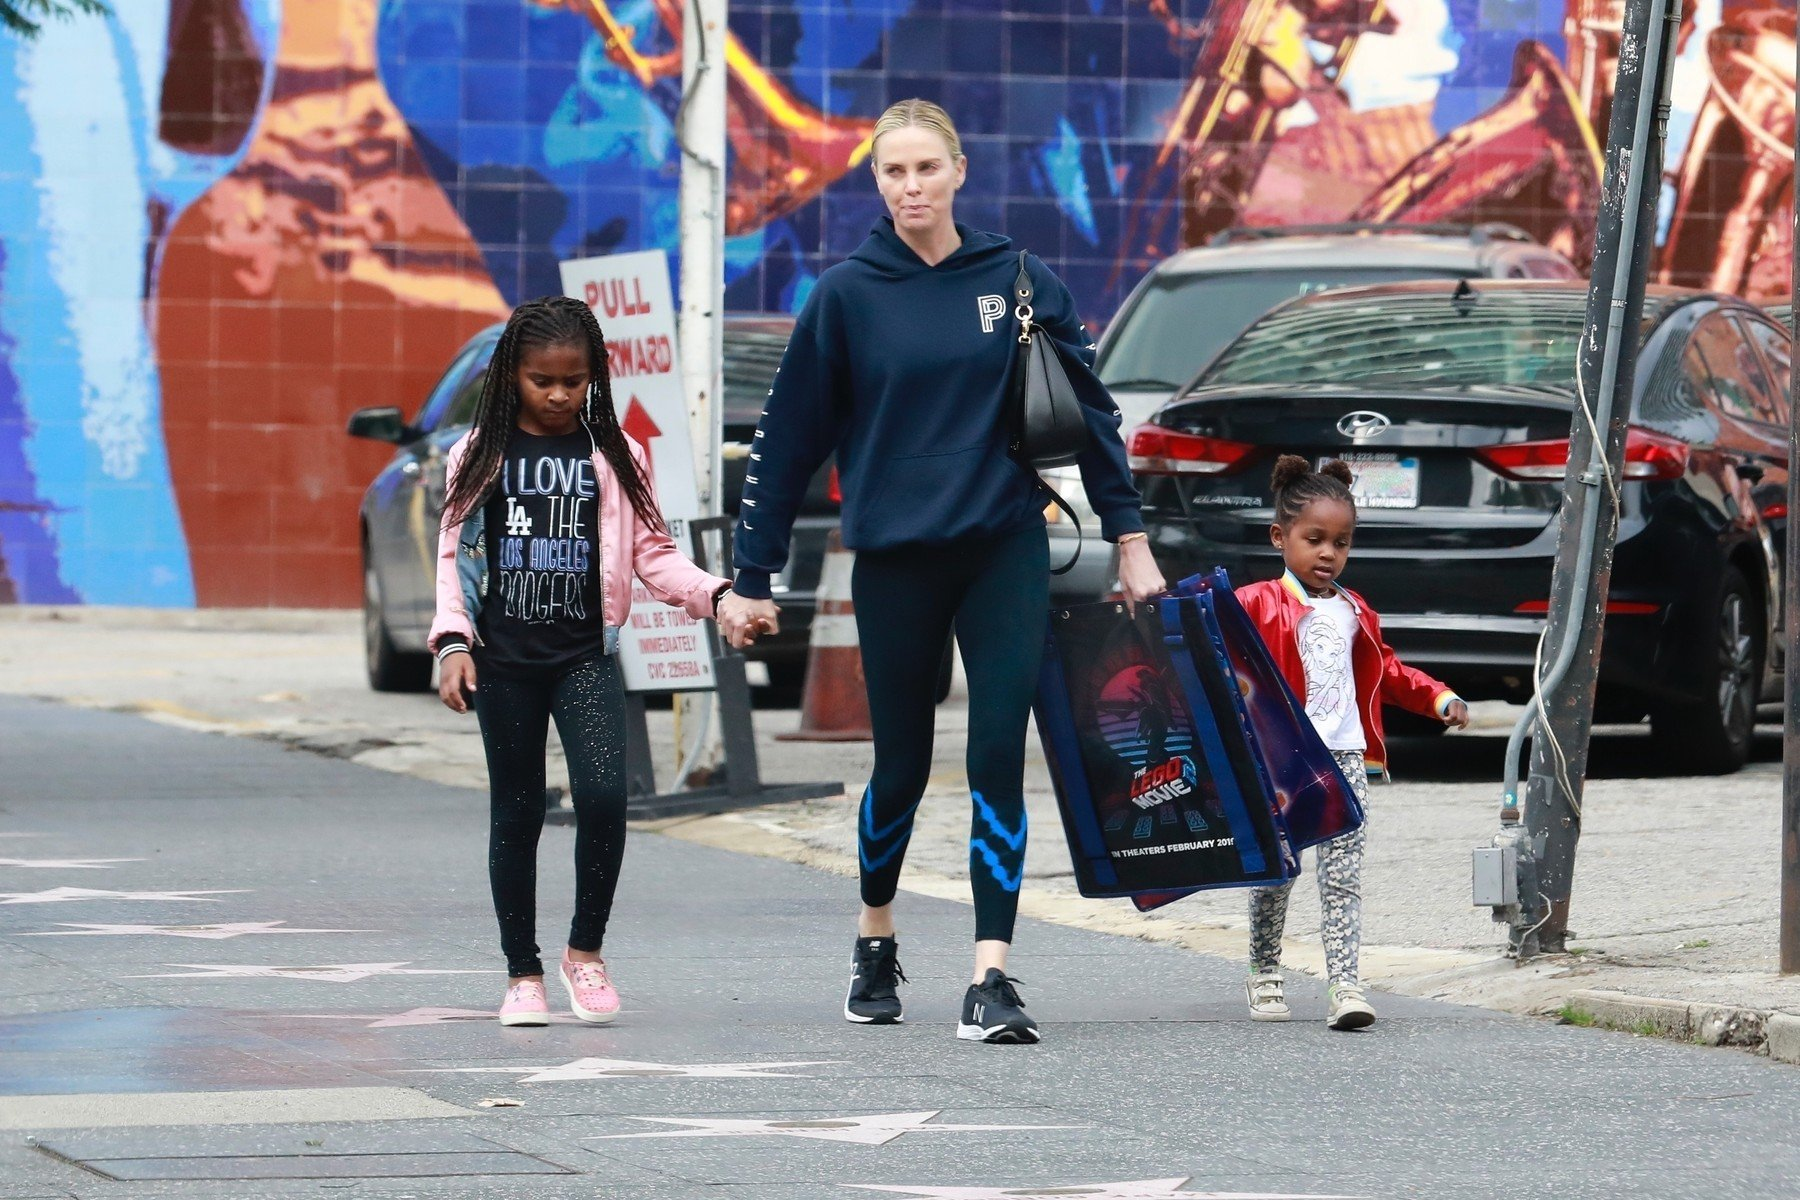 Hollywood, CA  - *EXCLUSIVE*  - Actress, Charlize Theron, is joined by her kids, Jackson and August Theron, for a trip to the premiere of the Lego Movie 2 in Los Angeles. The family step out in casual wear sporting hoodies, bomber jackets, and sneakers.  Pictured: Charlize Theron, August Theron, Jackson Theron     *UK Clients - Pictures Containing Children Please Pixelate Face Prior To Publication*, Image: 411719605, License: Rights-managed, Restrictions: , Model Release: no, Credit line: Profimedia, Backgrid USA